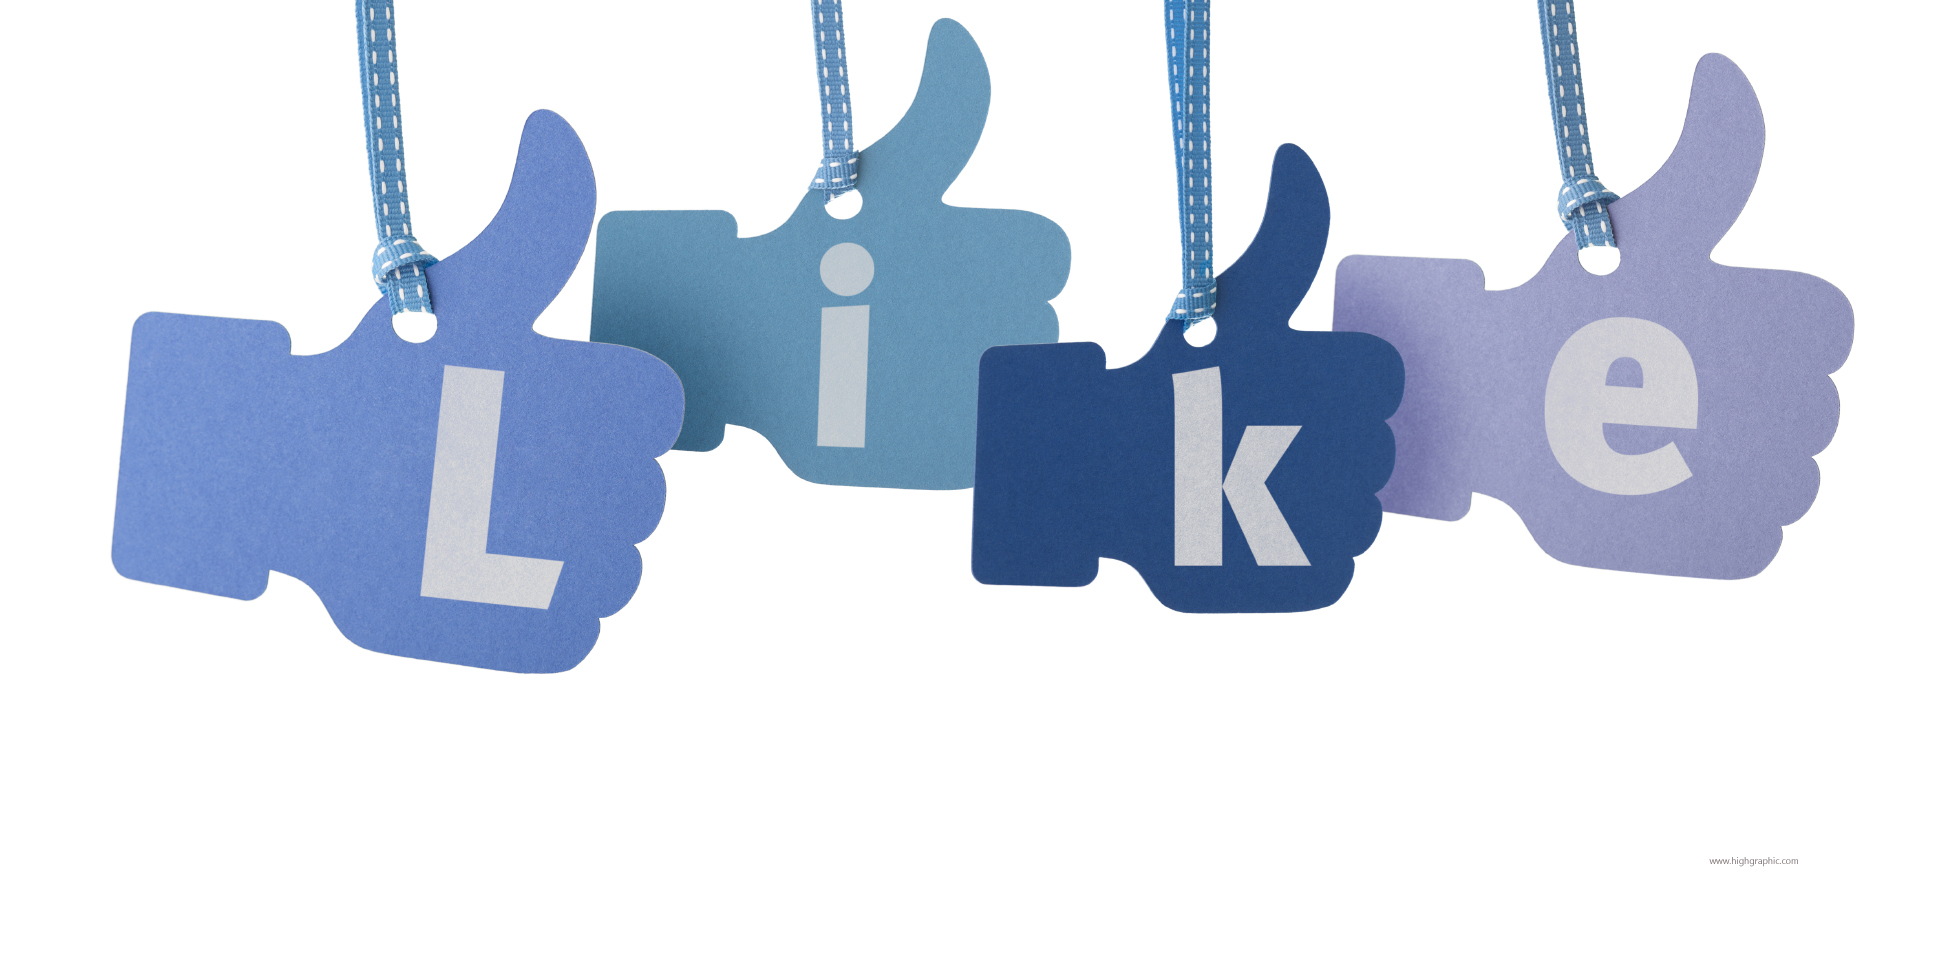 will facebook marketing work for my business?